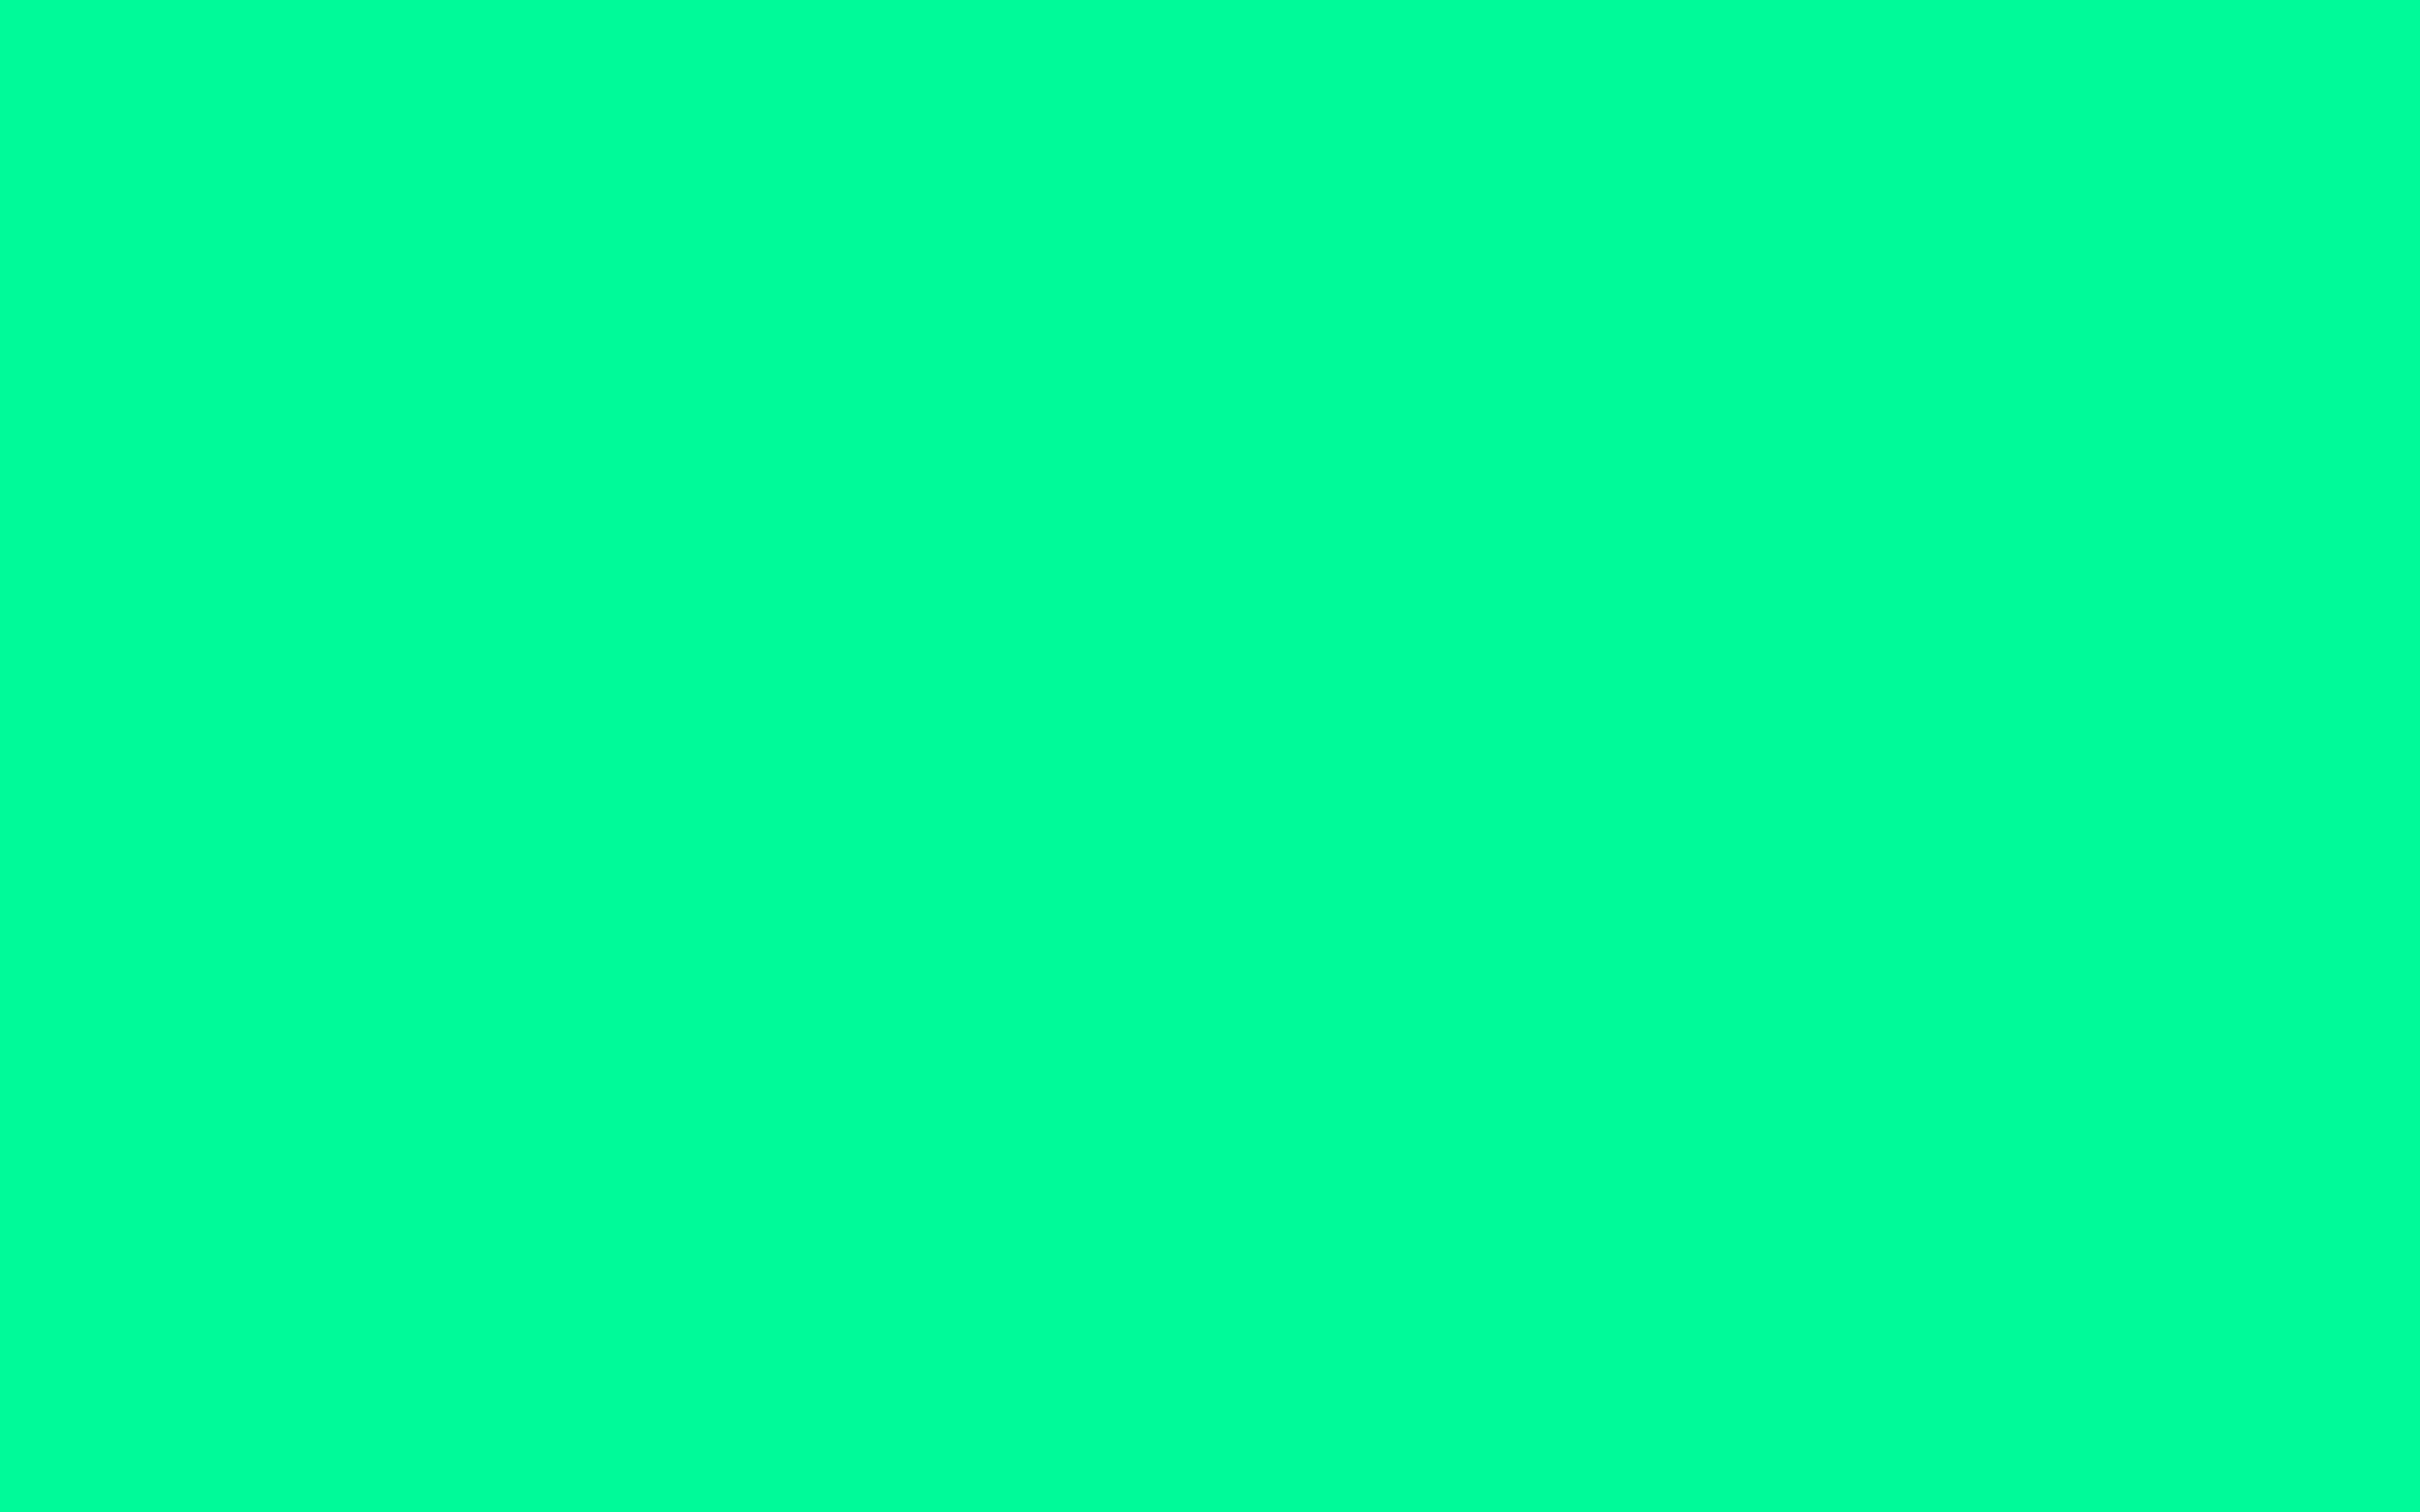 2560x1600 Medium Spring Green Solid Color Background